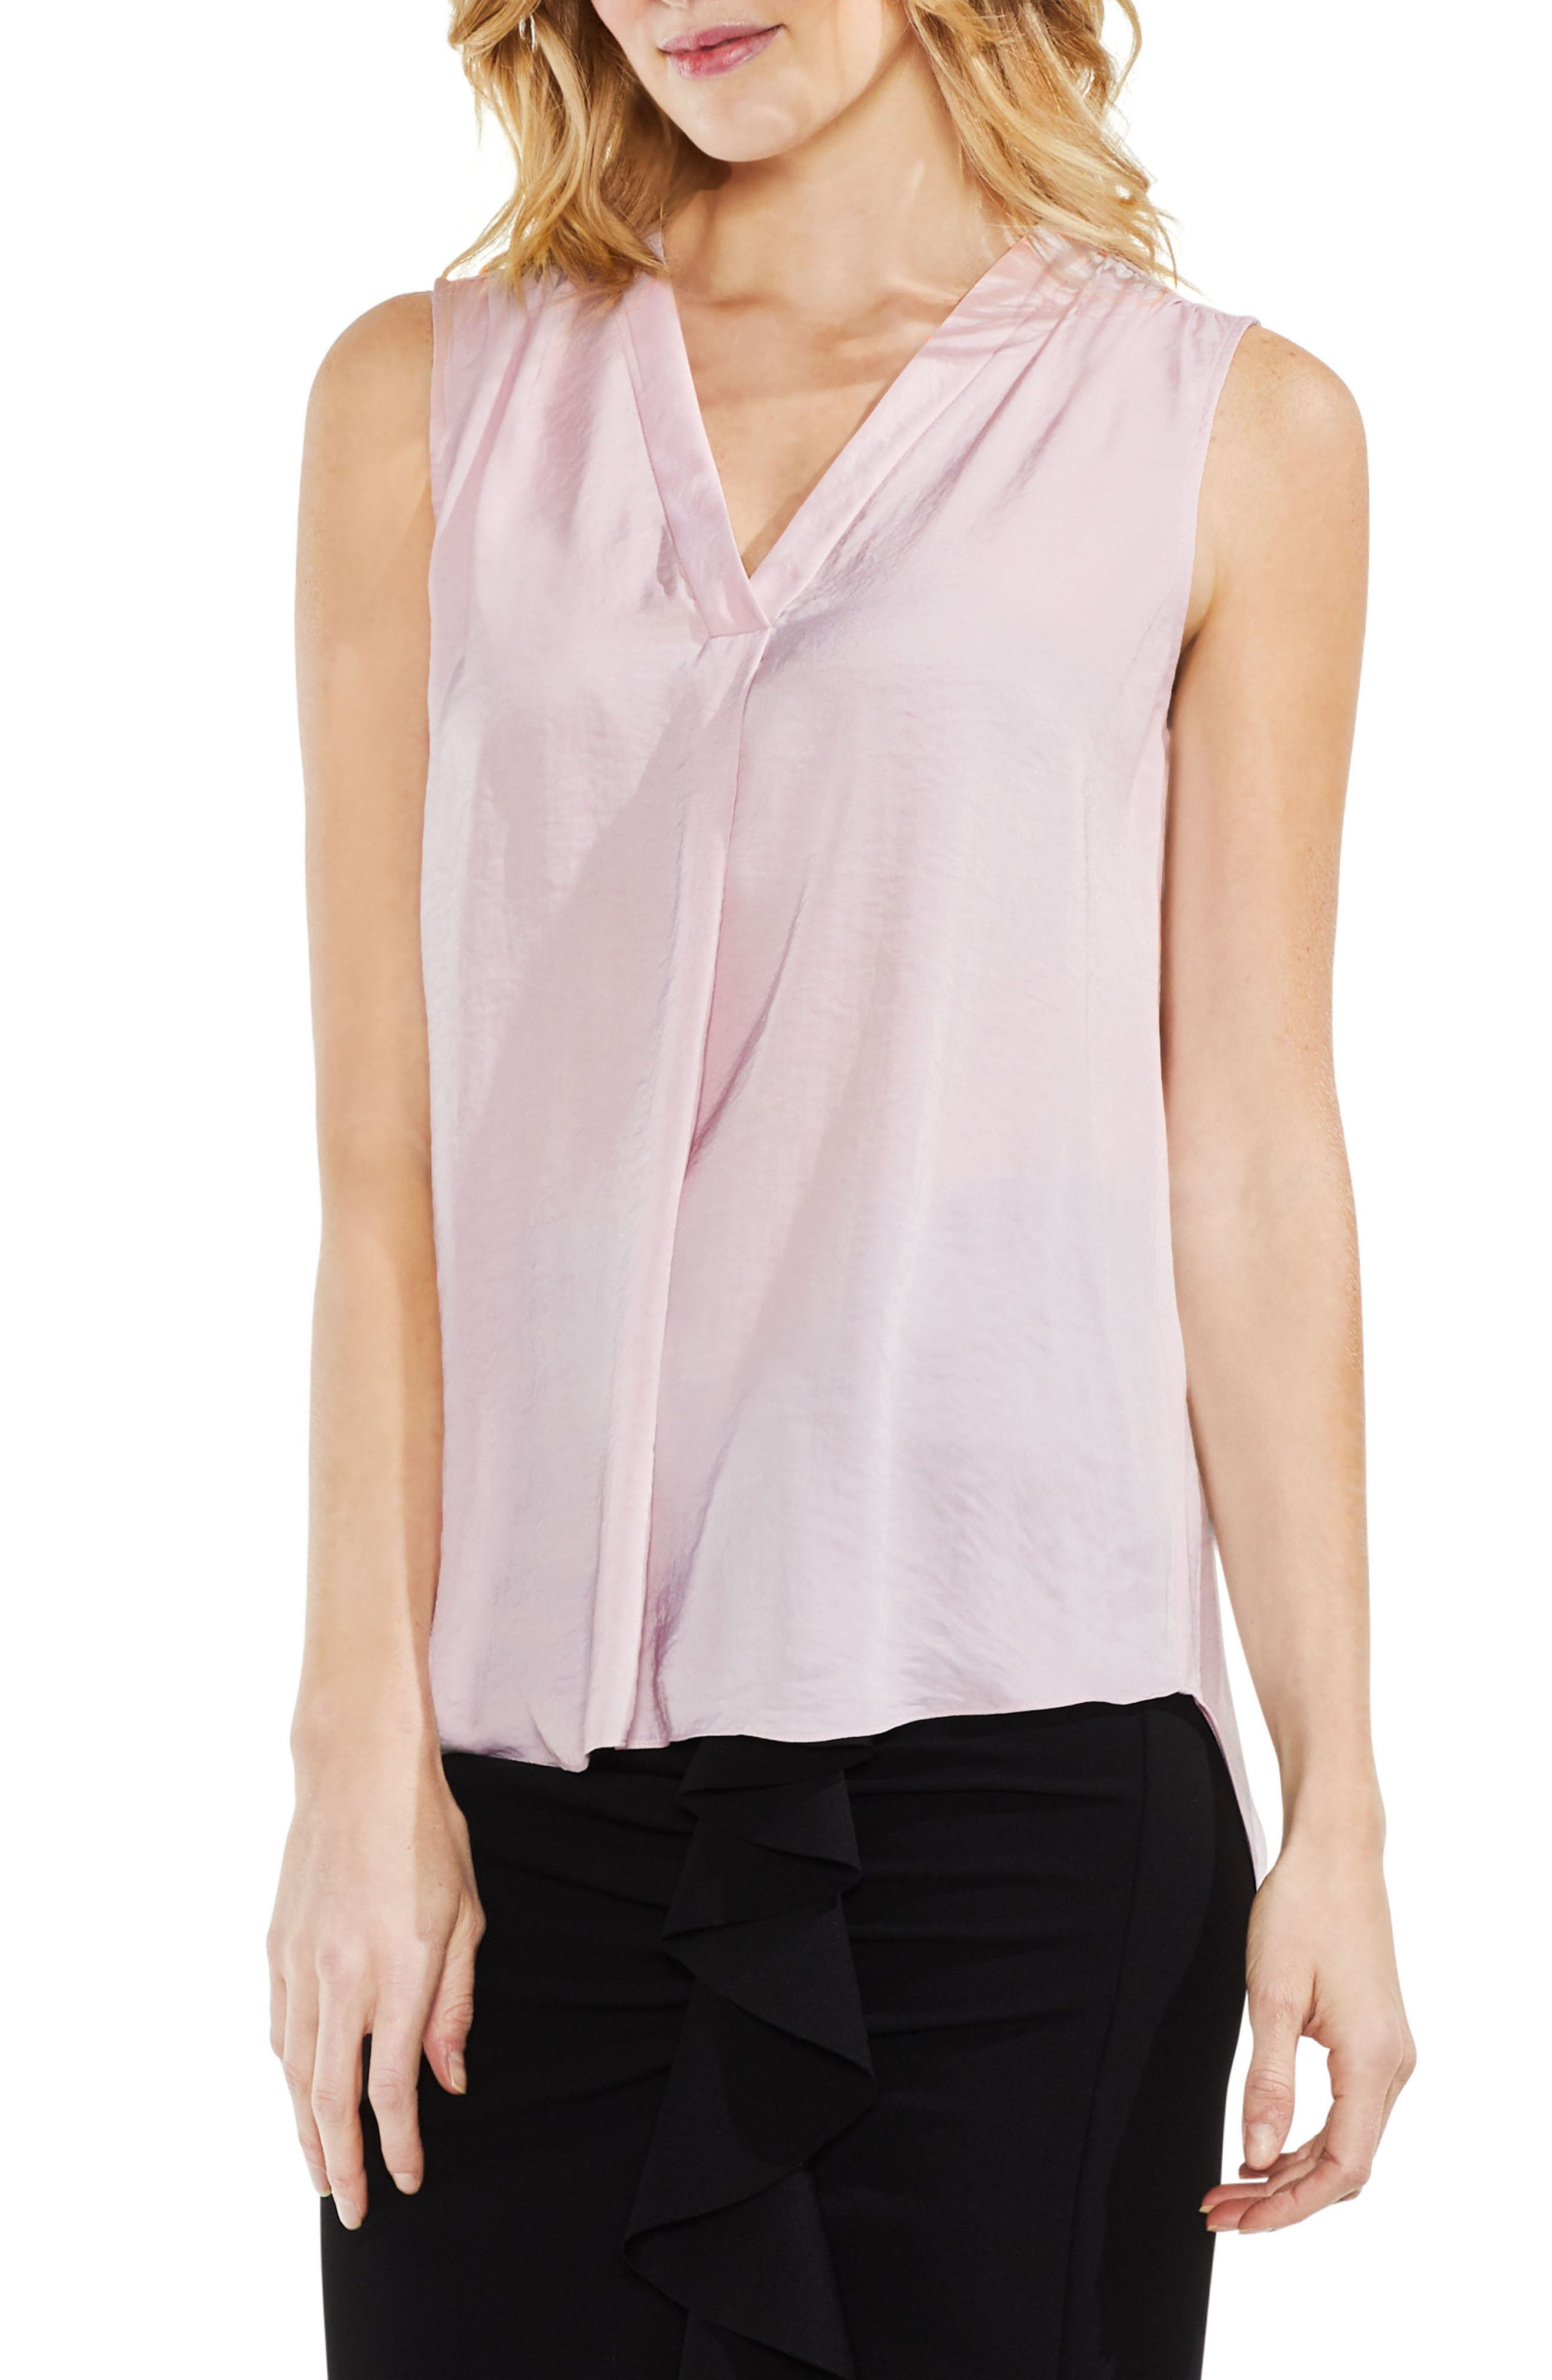 Rumpled Satin Blouse,                         Main,                         color, Pink Bliss